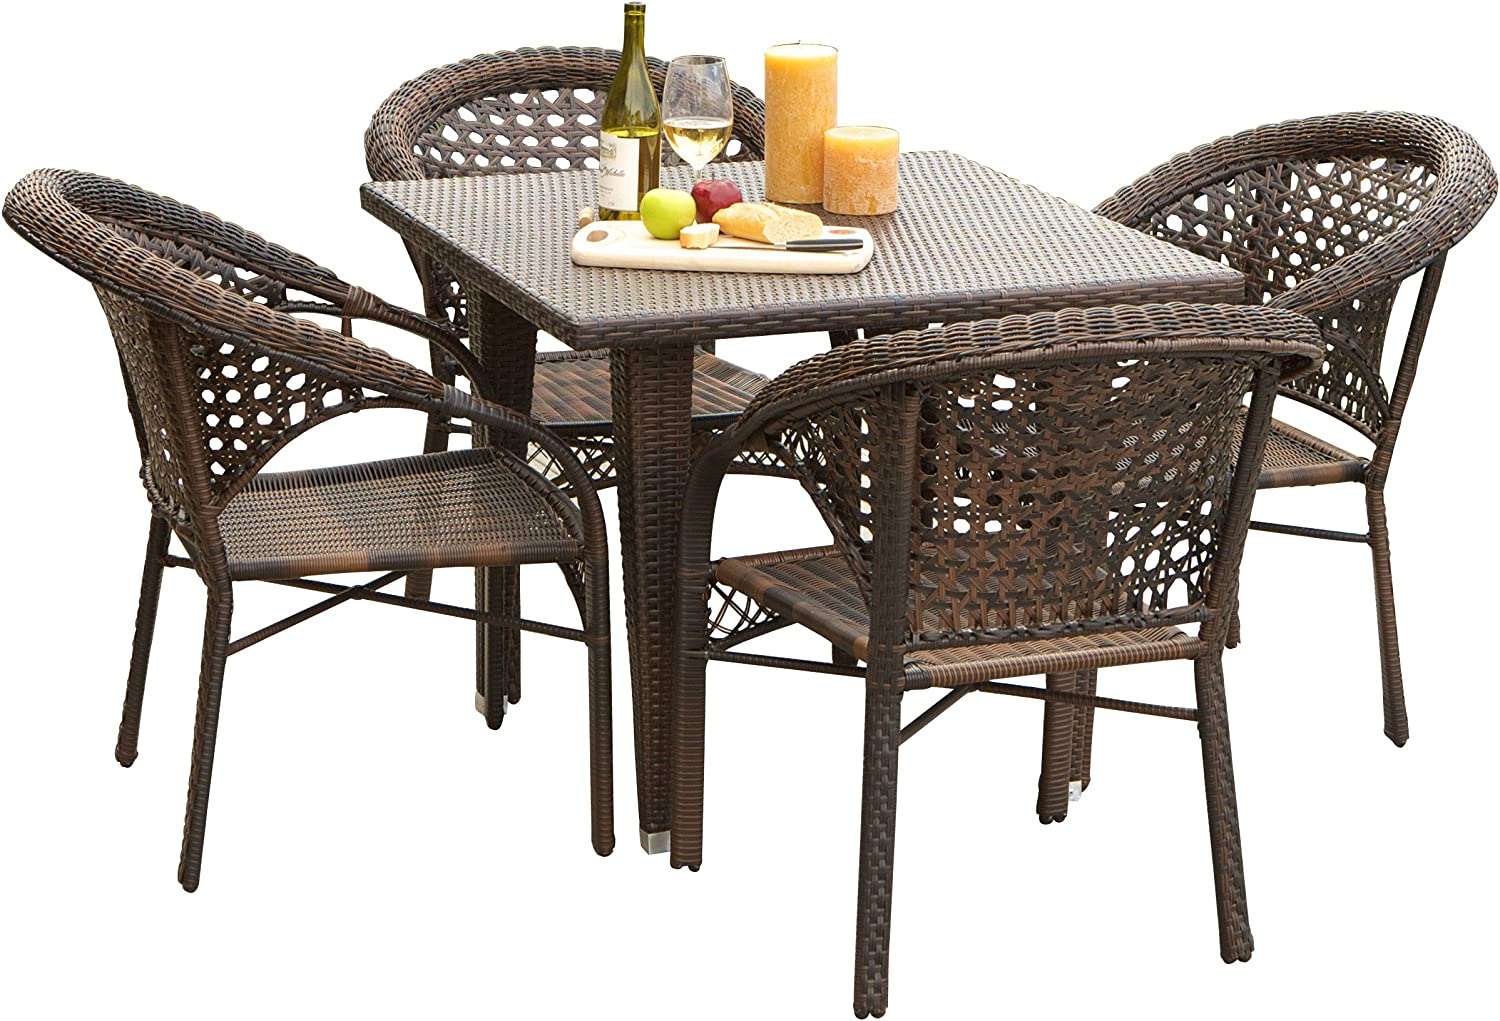 Christopher Knight Home Malibu Patio Furniture Outdoor Wicker Dining Set with Stacking Patio Chairs 5 Piece Brown